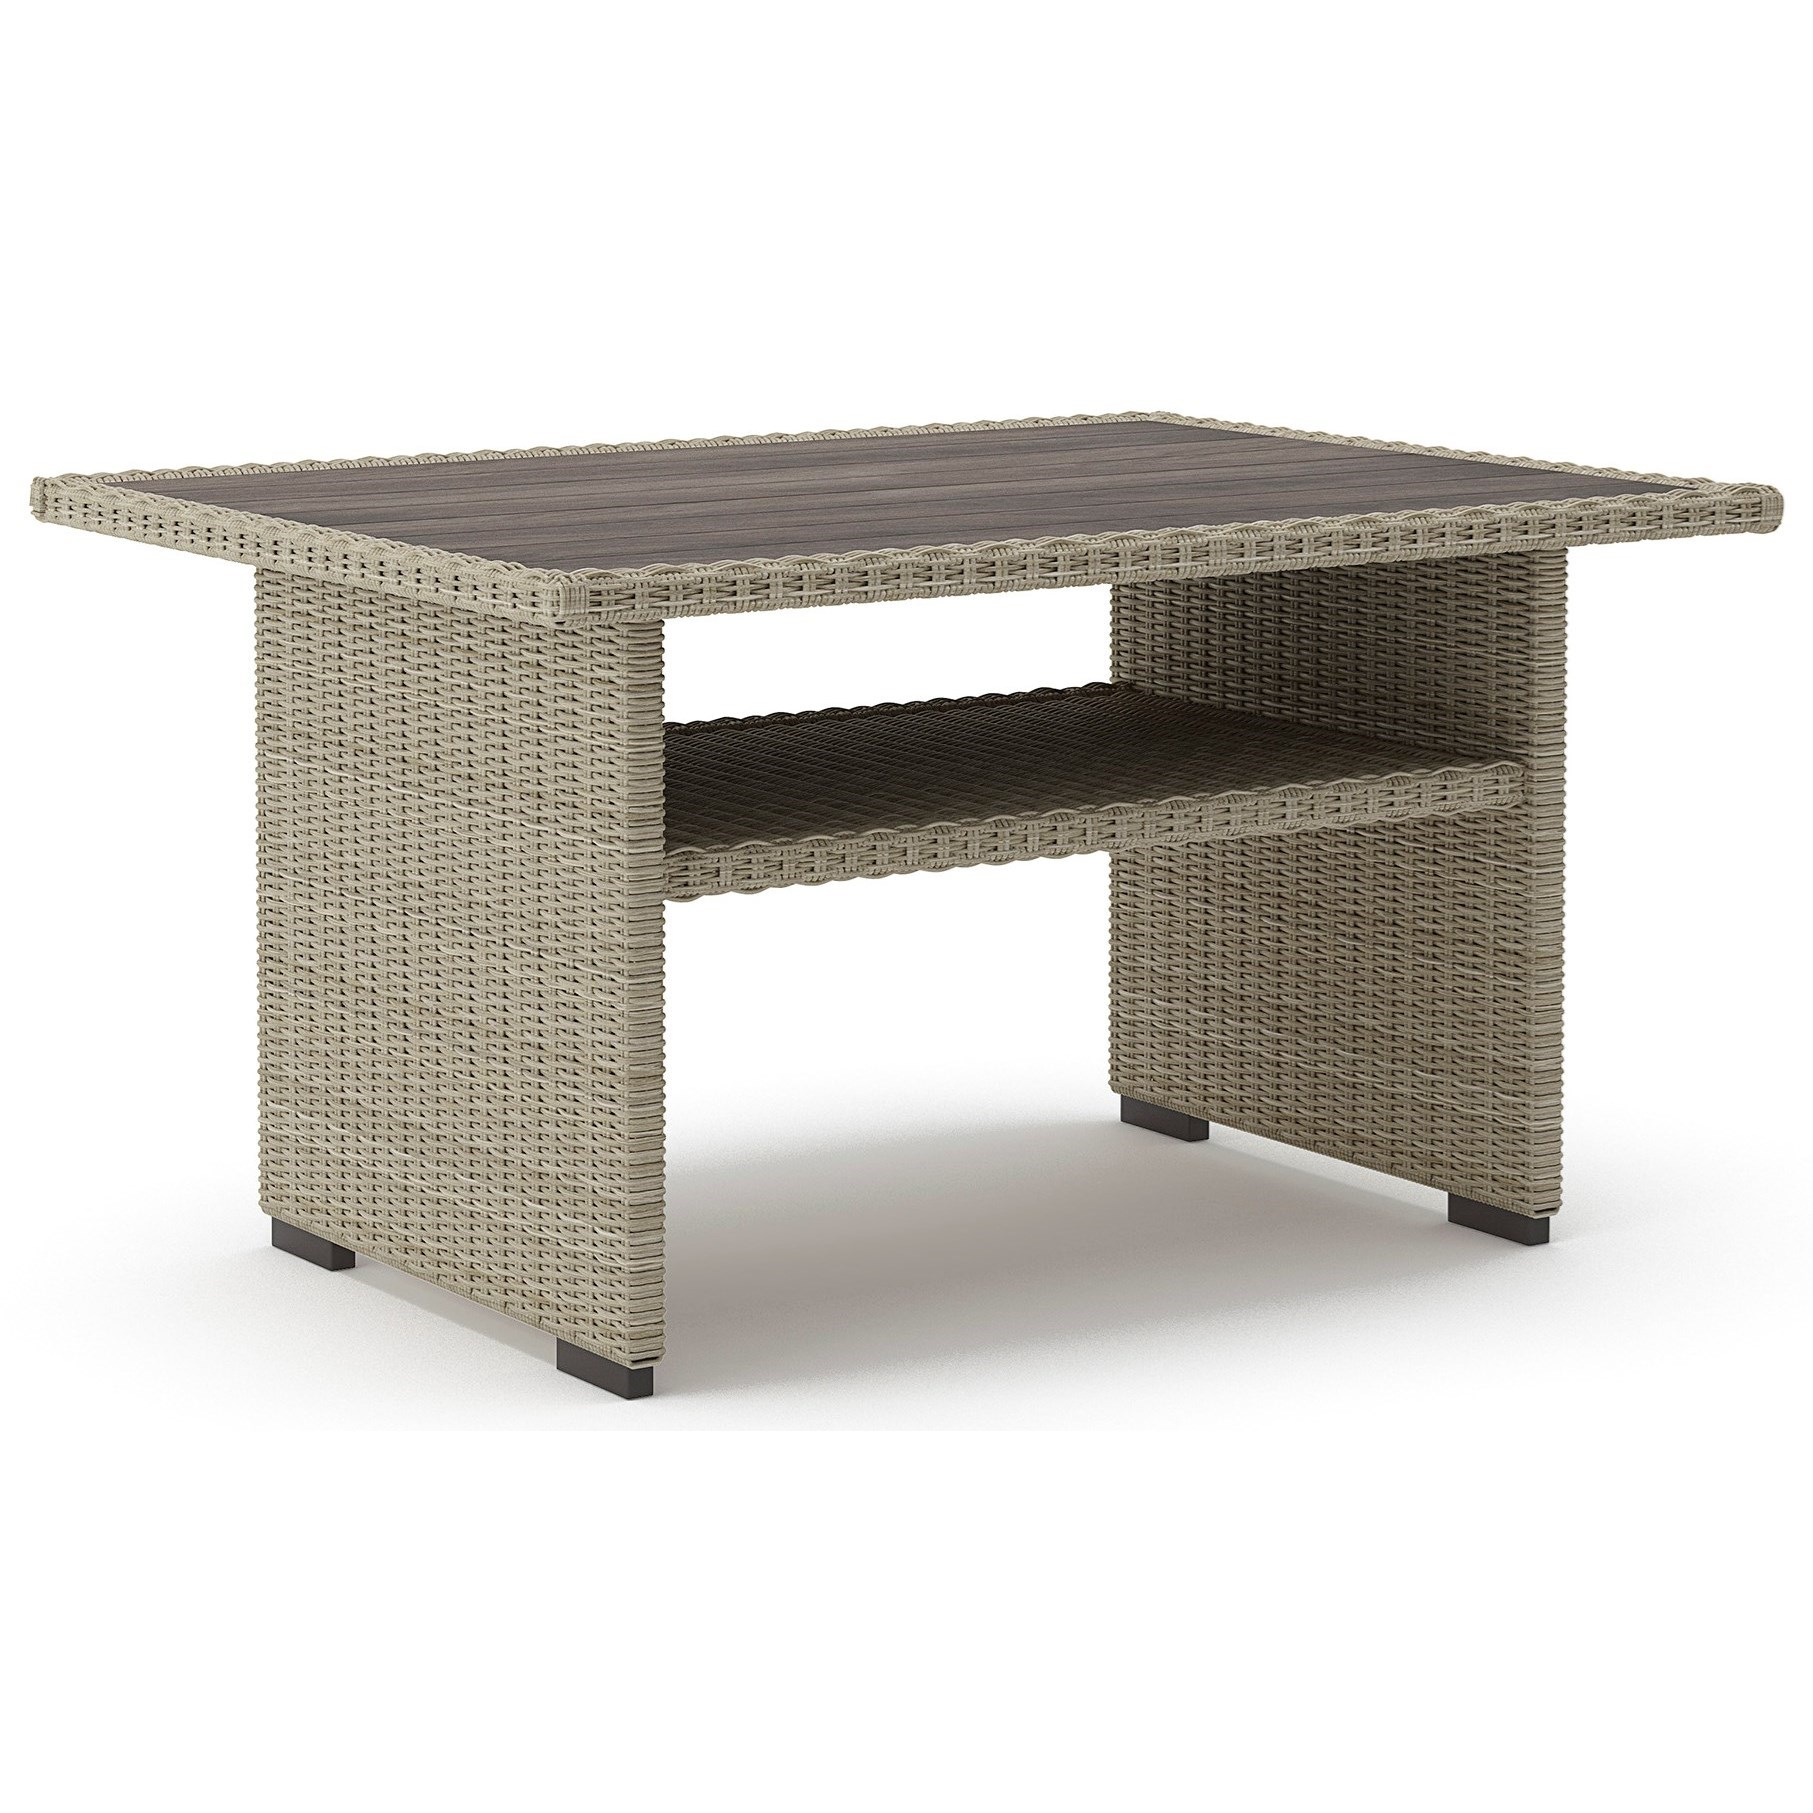 Signature Design by Ashley Silent Brook Rectangular Multi-Use Table - Item Number: P443-625